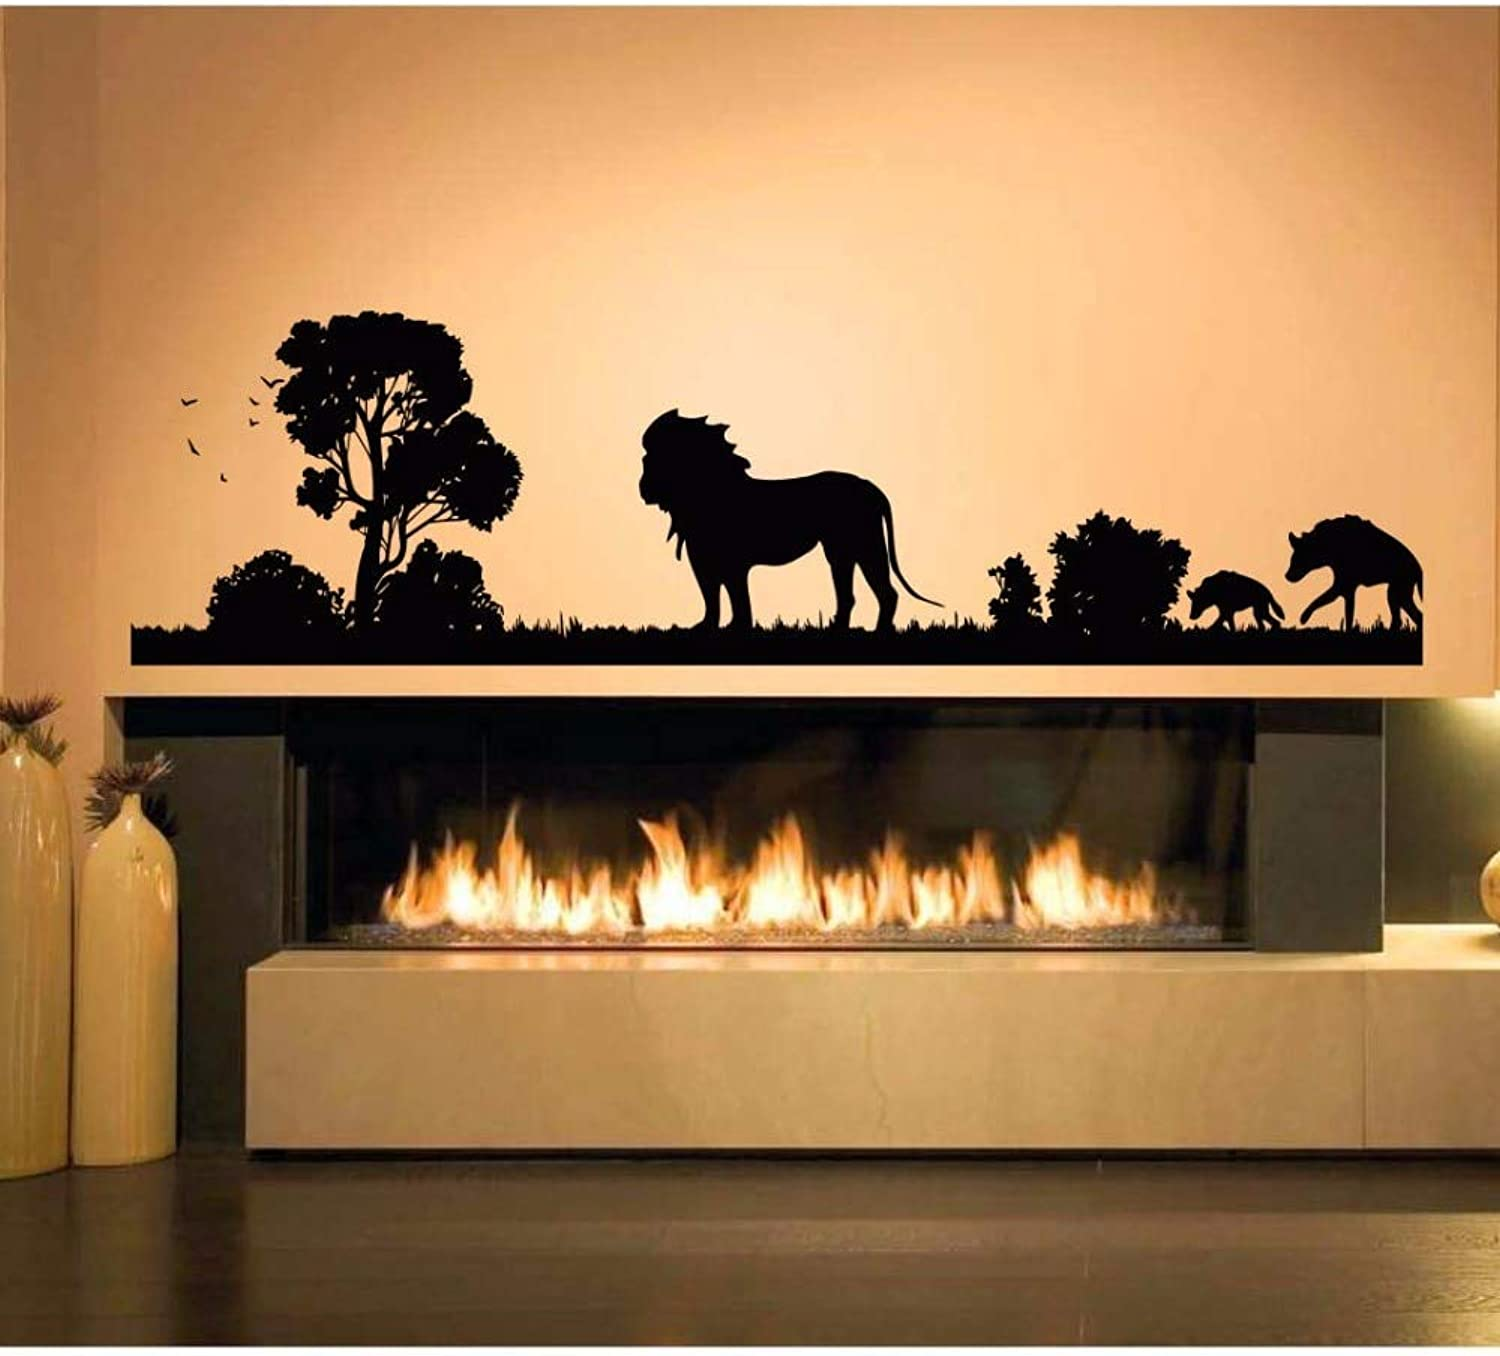 DalaB YOYOYU Wall Sticker Africa Savanna Animal Room Windows Door Decoration African Zoo Nursery PVC Mural Poster Sticker J990  (color  Other color, Size  42X153CM)